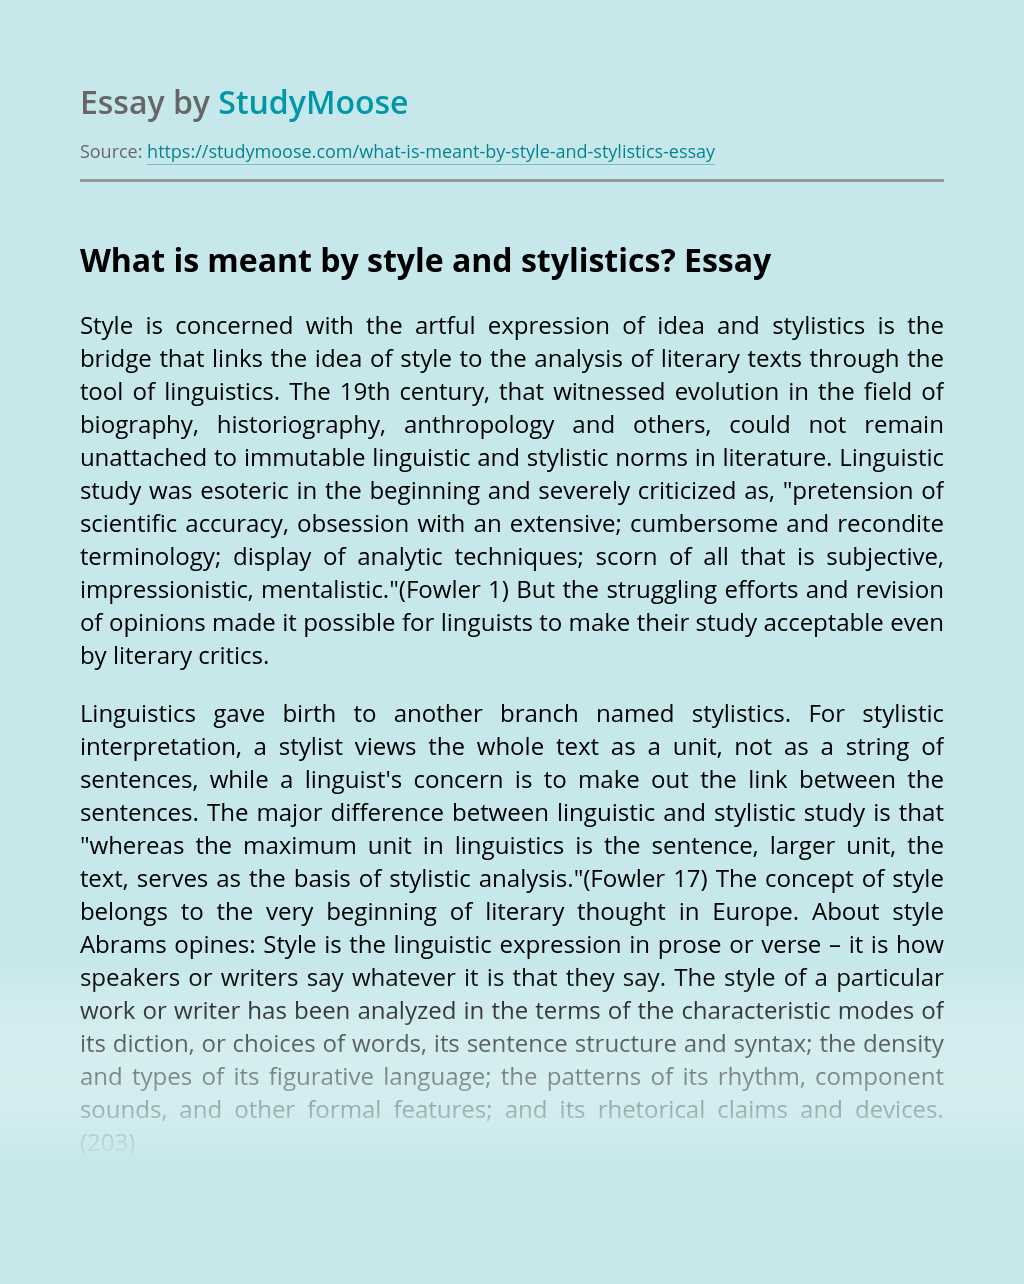 What is meant by style and stylistics?